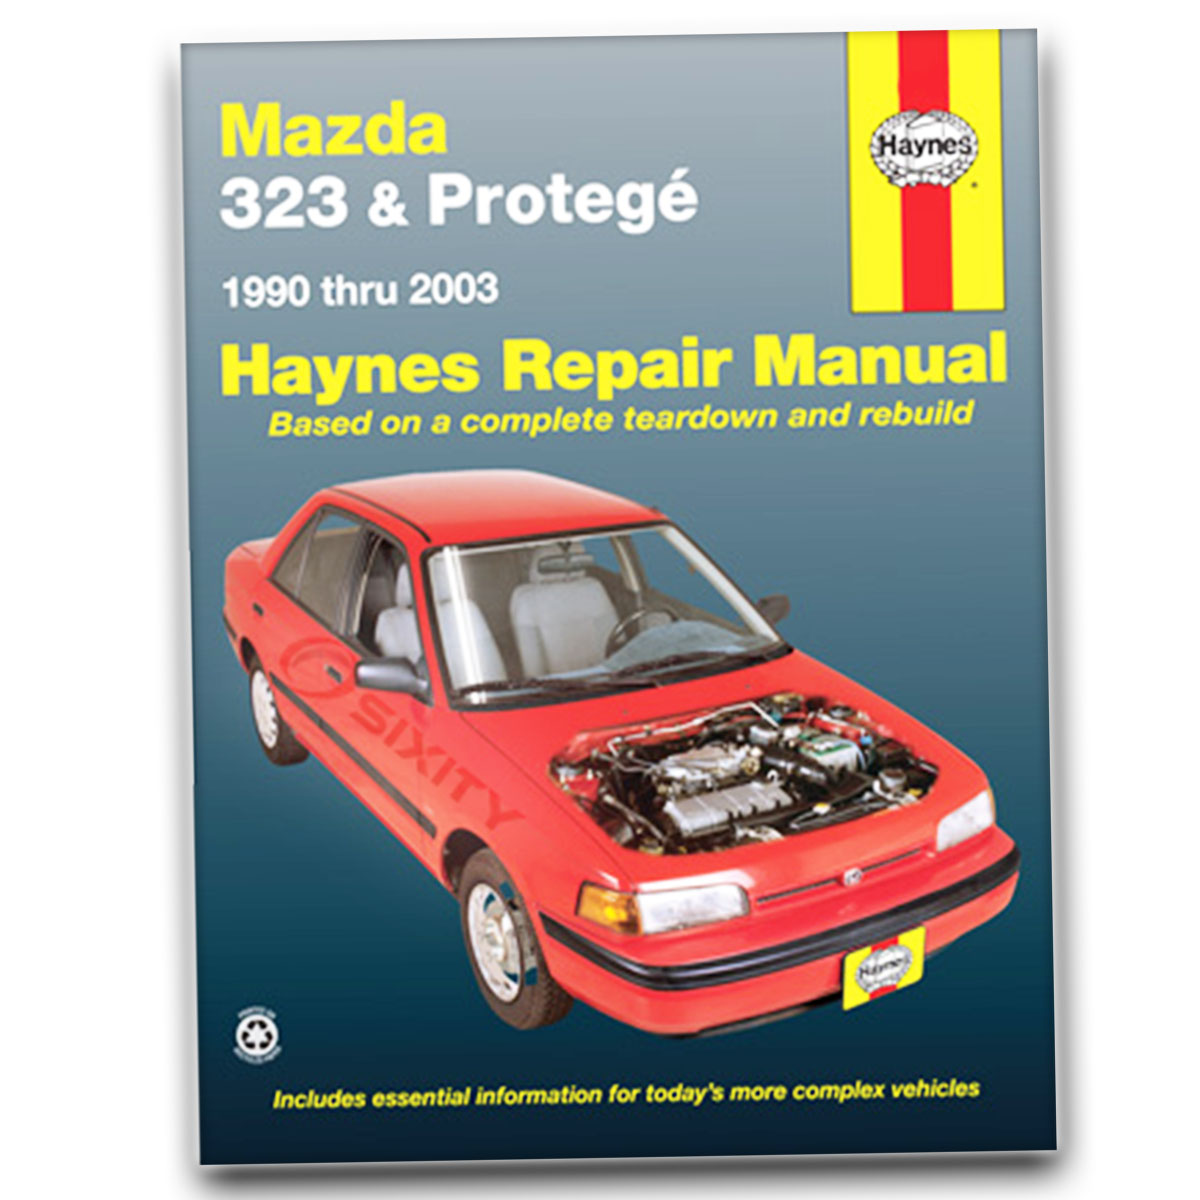 haynes repair manual for mazda protege 4wd base es mp3 dx mazdaspeed rh  ebay com 02 Mazda Protege Headlights 02 Mazda Protege Black